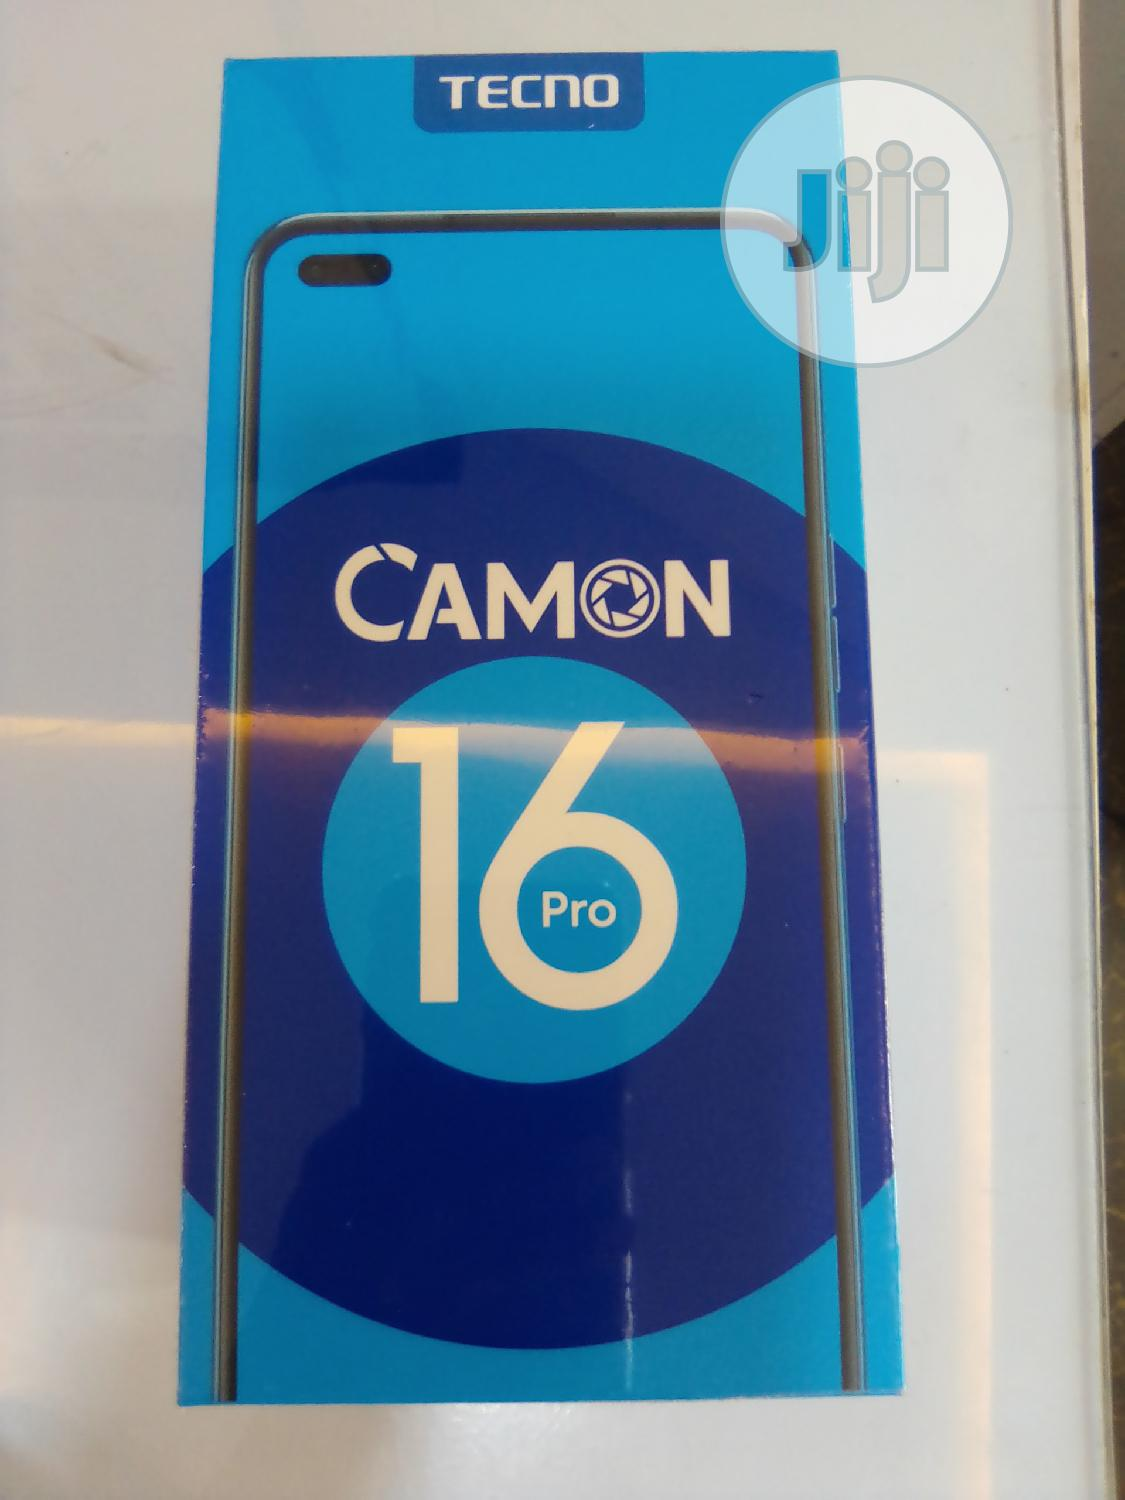 New Tecno Camon 16 Pro 64 GB Black | Mobile Phones for sale in Ikeja, Lagos State, Nigeria